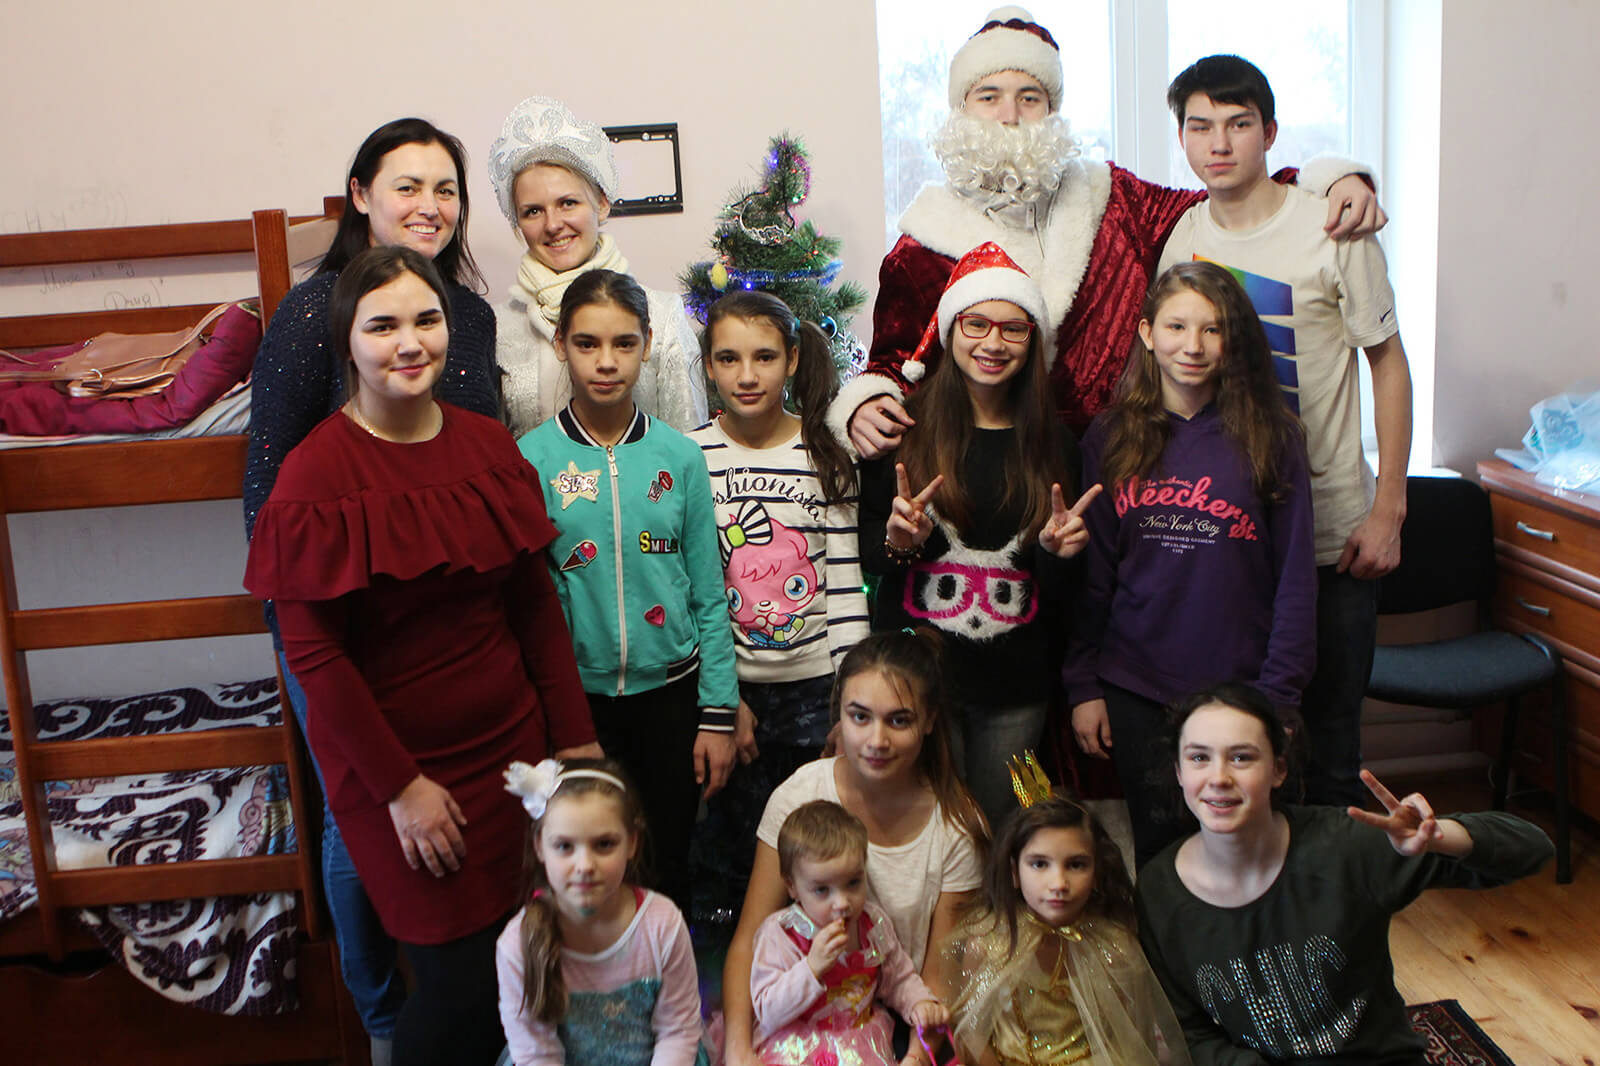 Brightening Christmas for kids: Redwerk team visited children in foster families, photo 2